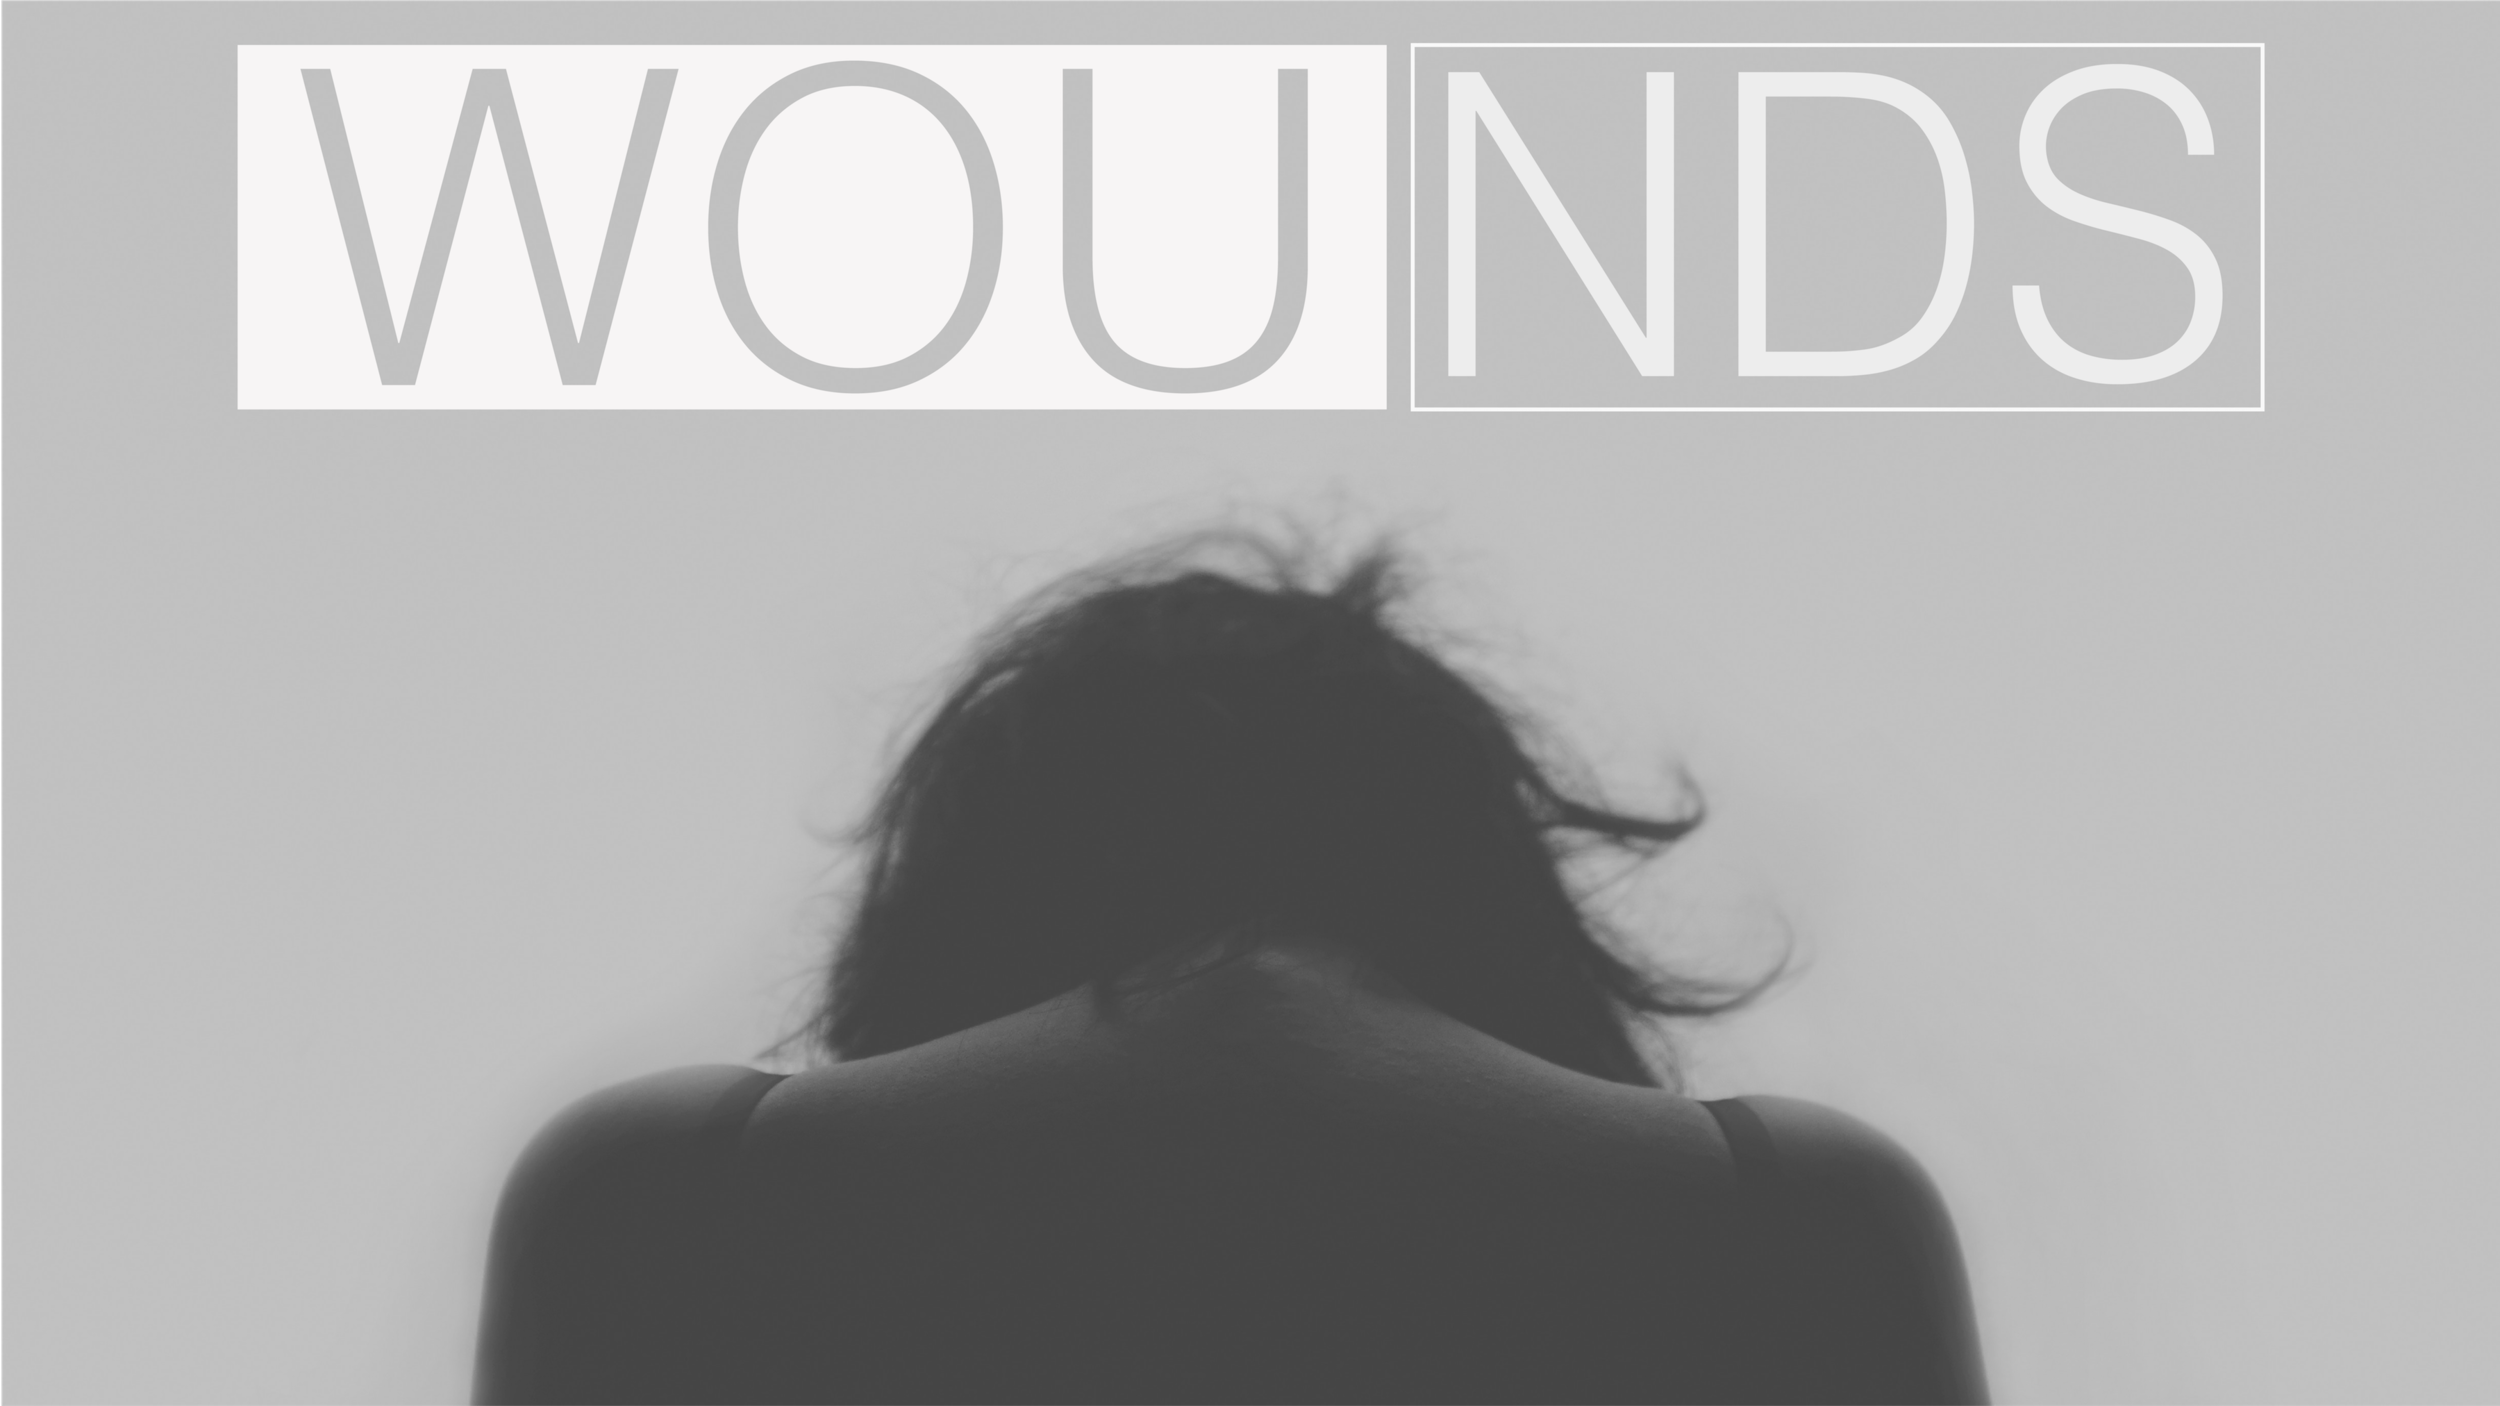 HCBCWounds2-02 copy.png